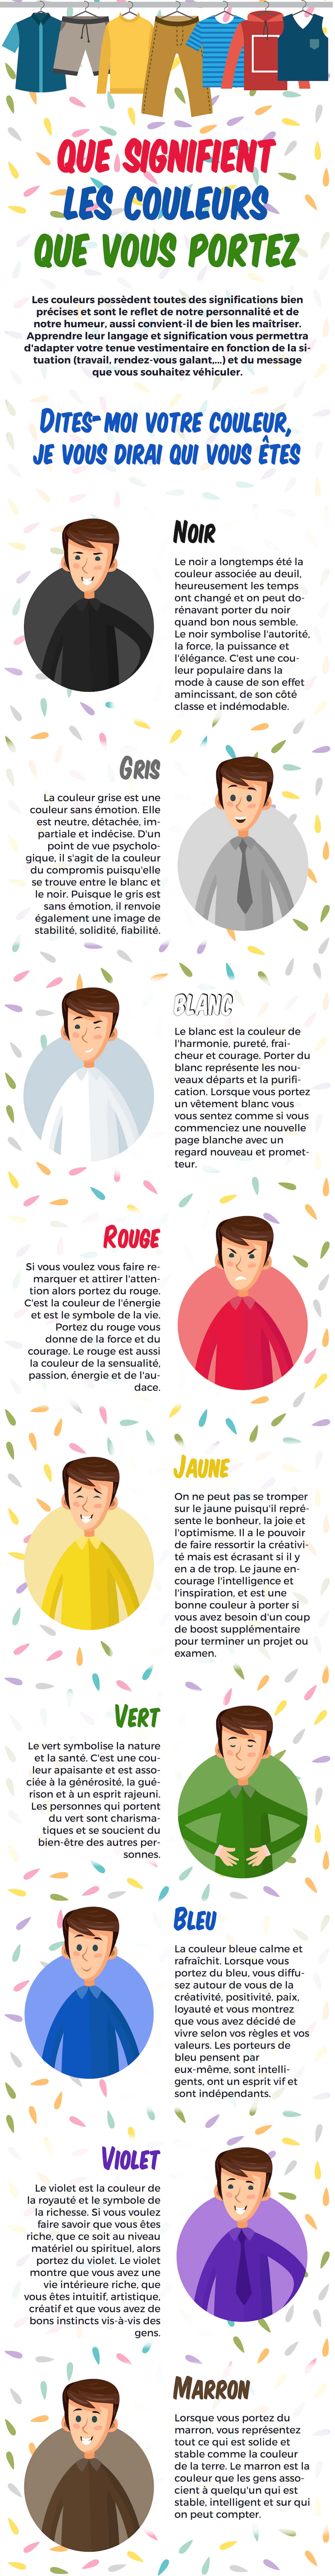 infographie signification couleurs homme